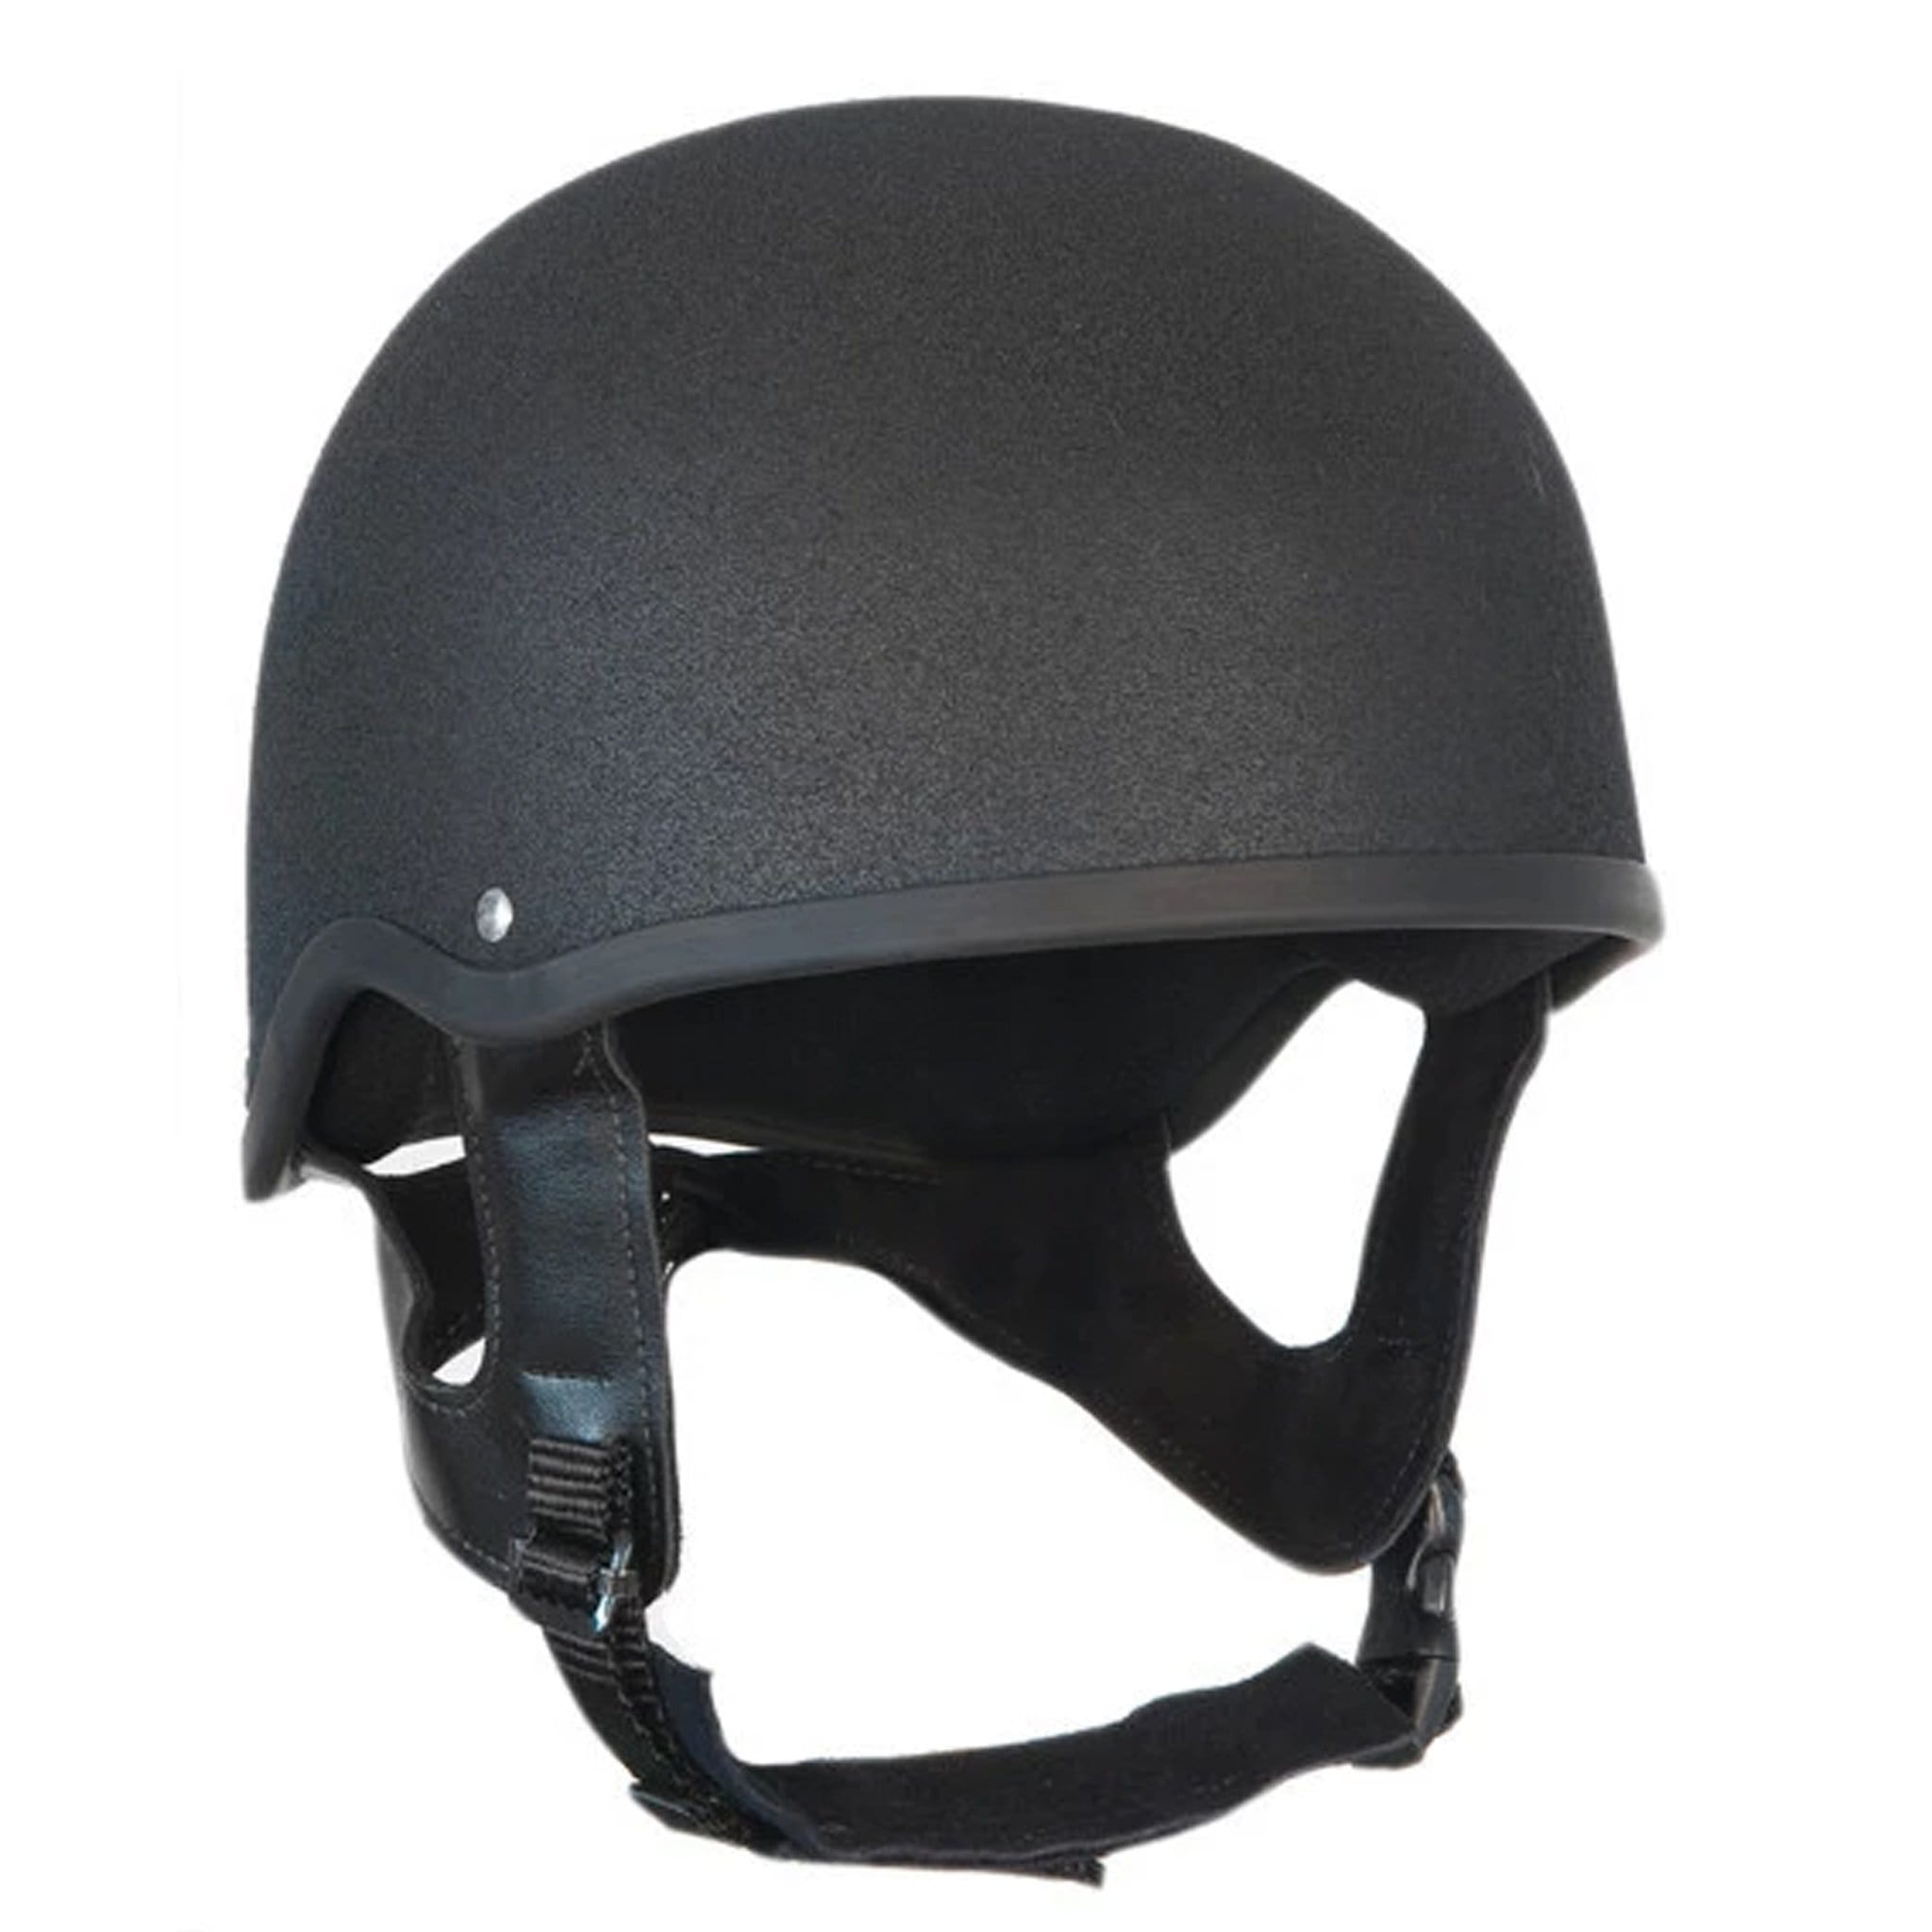 Champion Euro Deluxe Plus Helmet Front View.